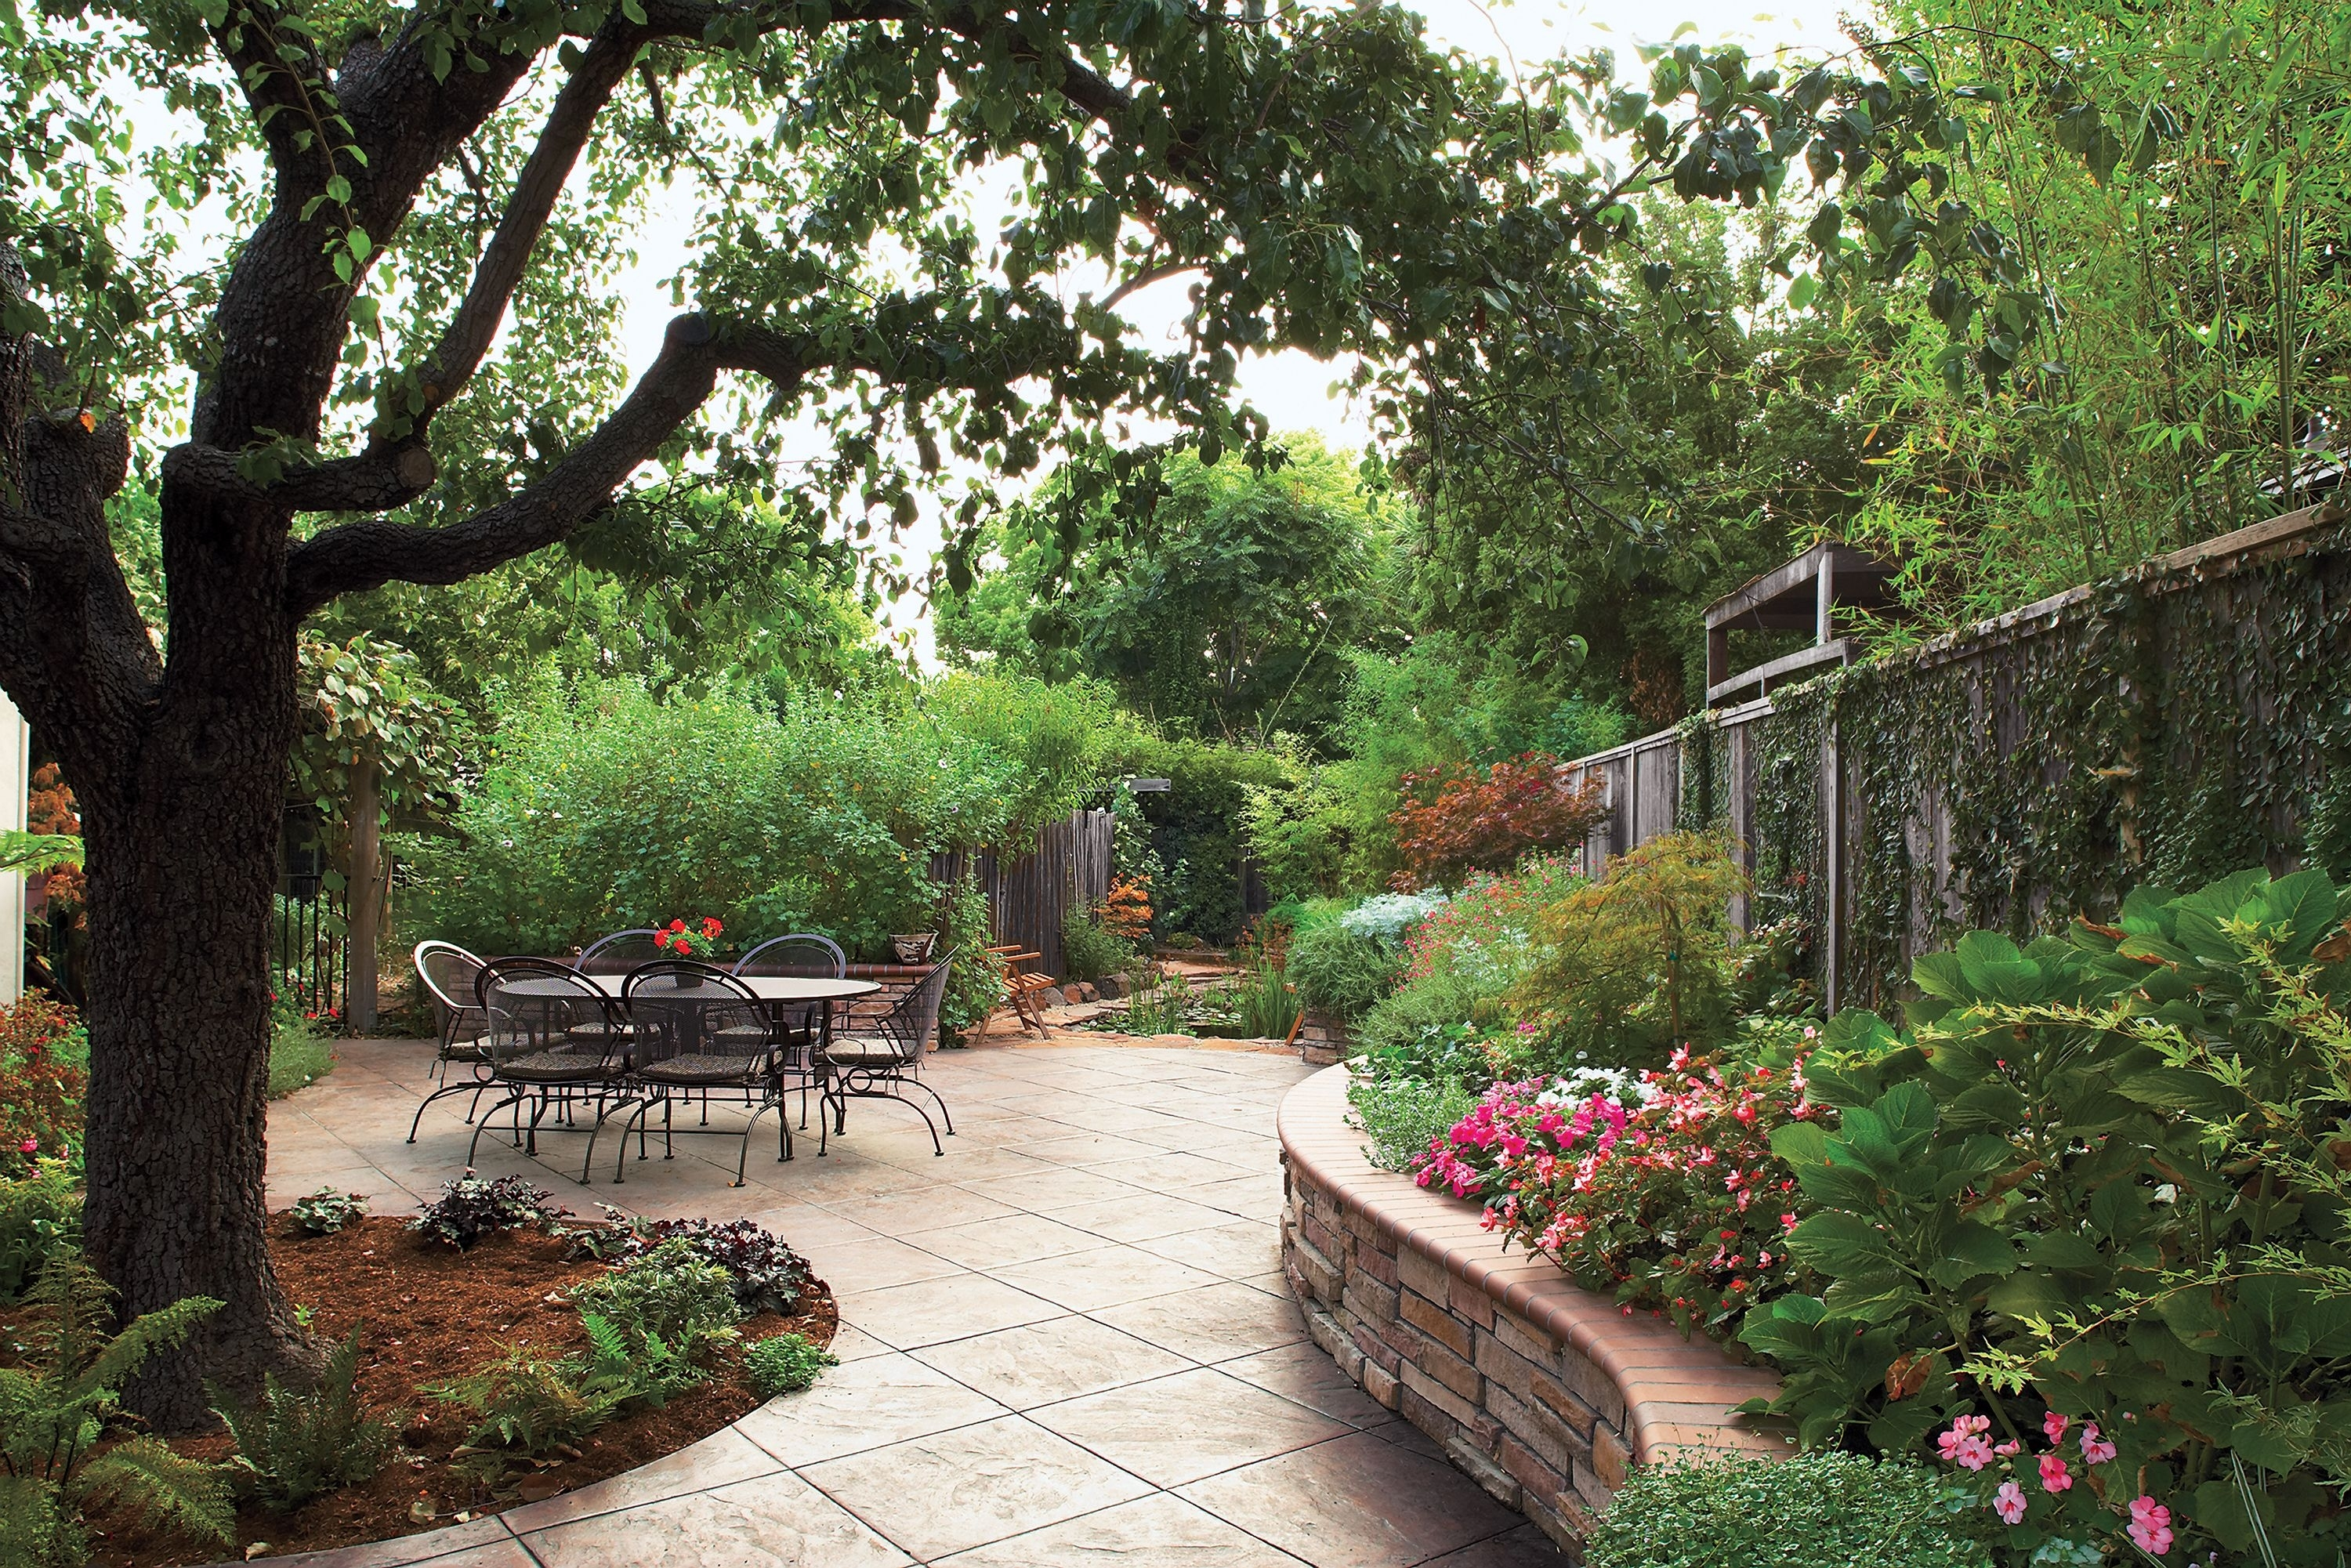 Building Blocks For A Perfect Patio | Outdoor Design | Pinterest intended for This Old House Garden Design